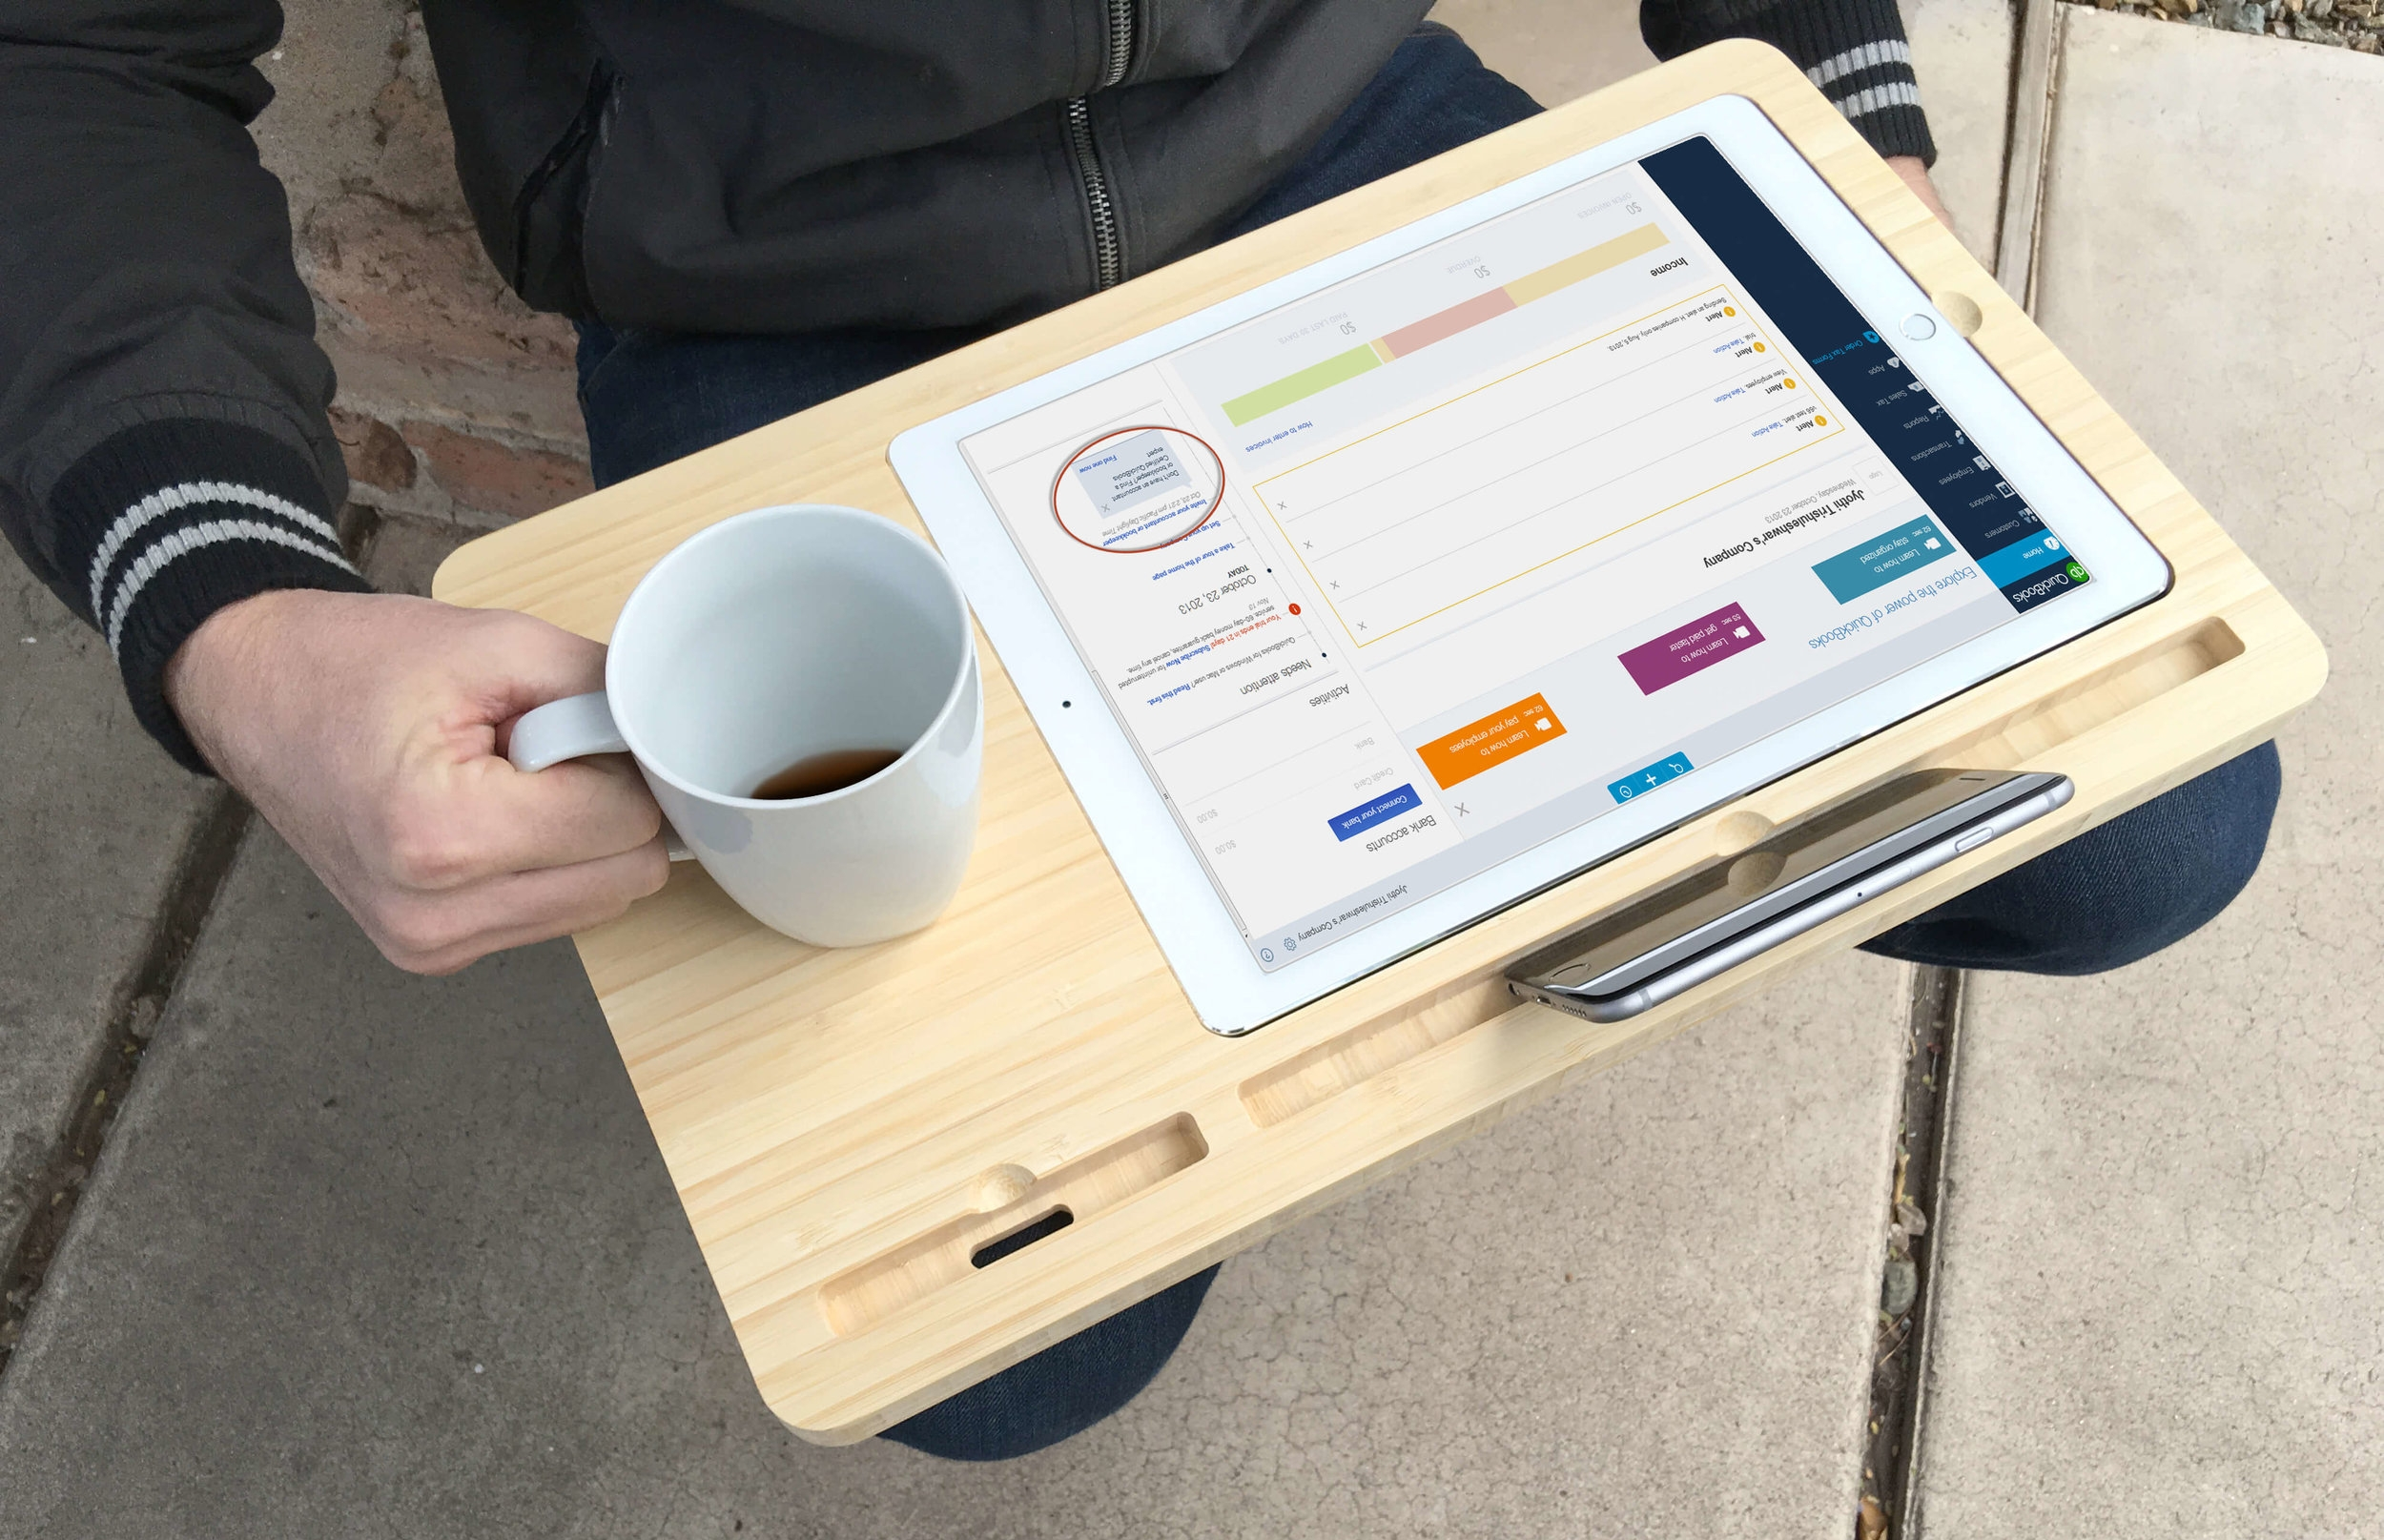 For iPad + Pro - Mobile Station